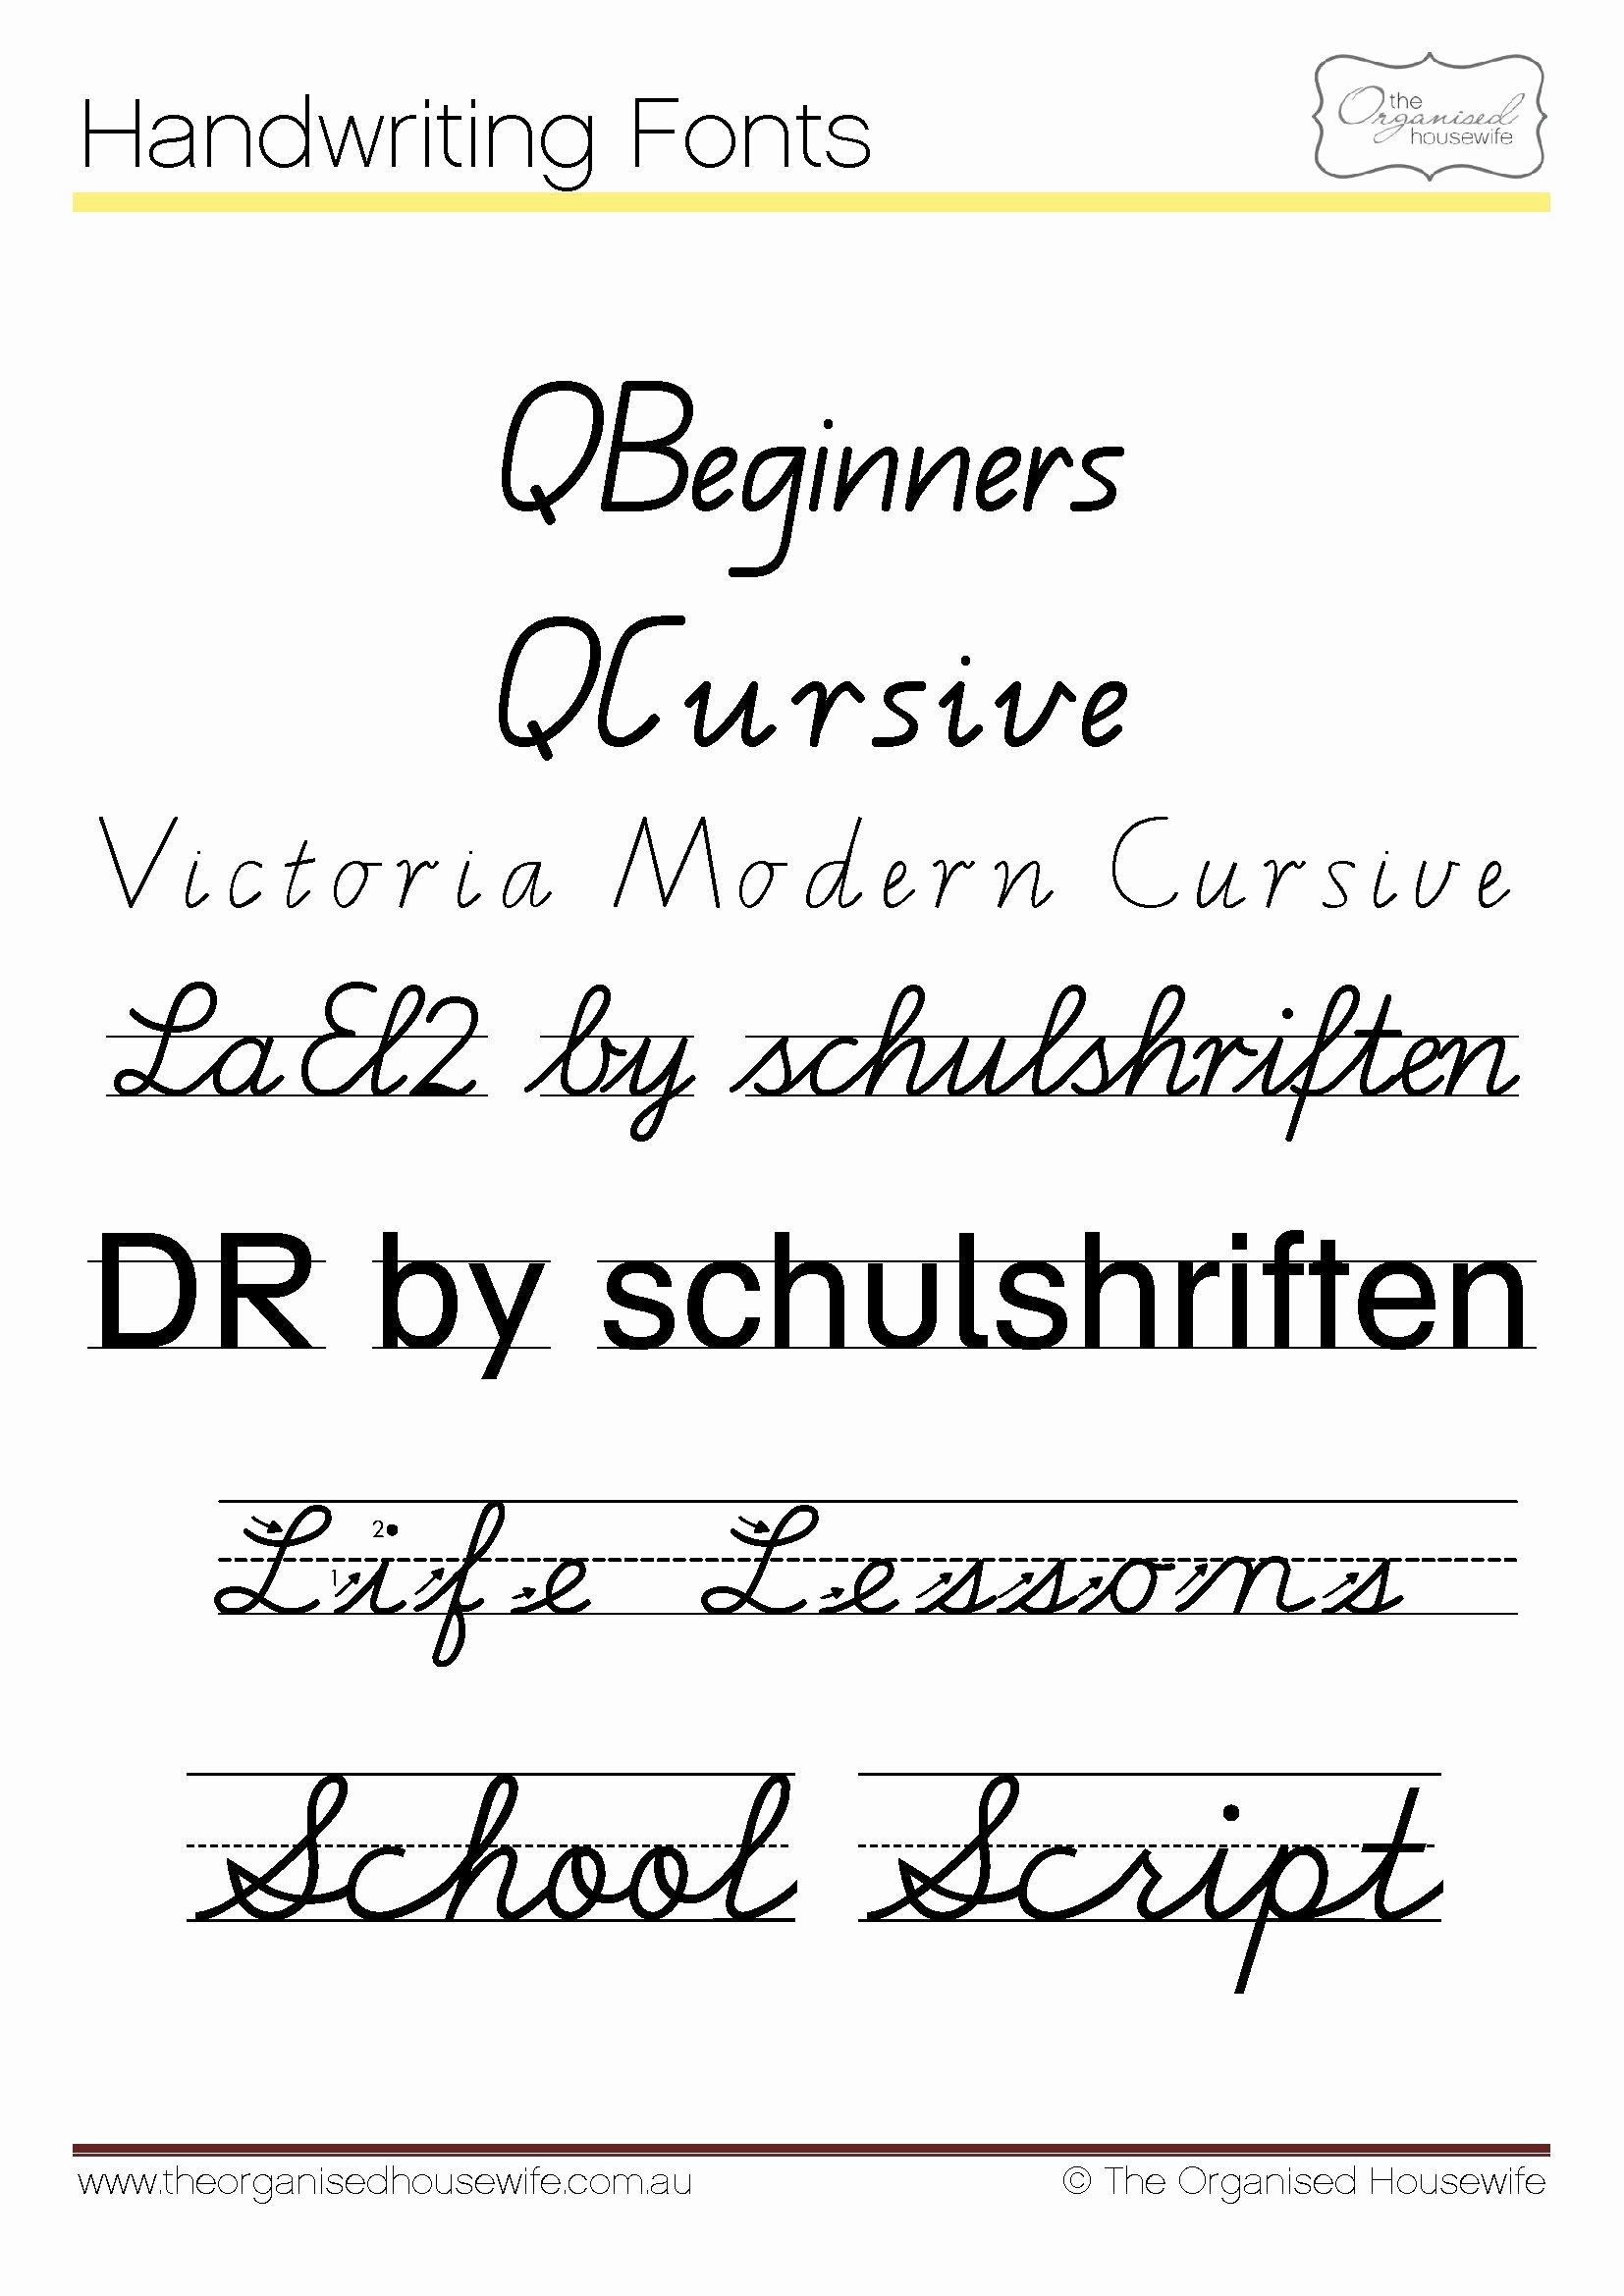 Cursive Handwriting Fonts Free New Fonts to Help Kids to Write Qld Cursive the organised